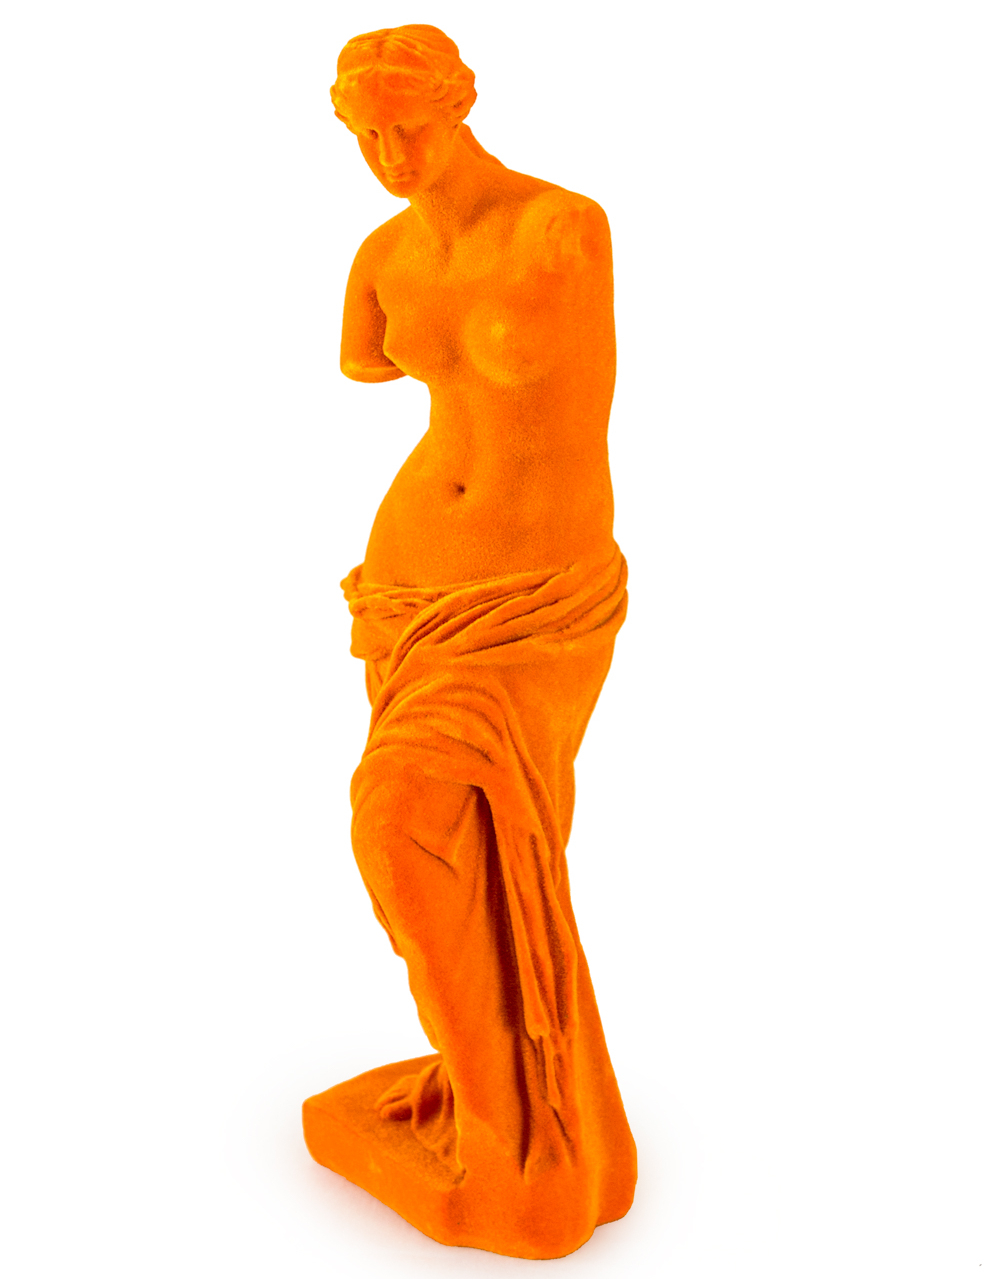 Orange Flock VenusDe Milo Figure